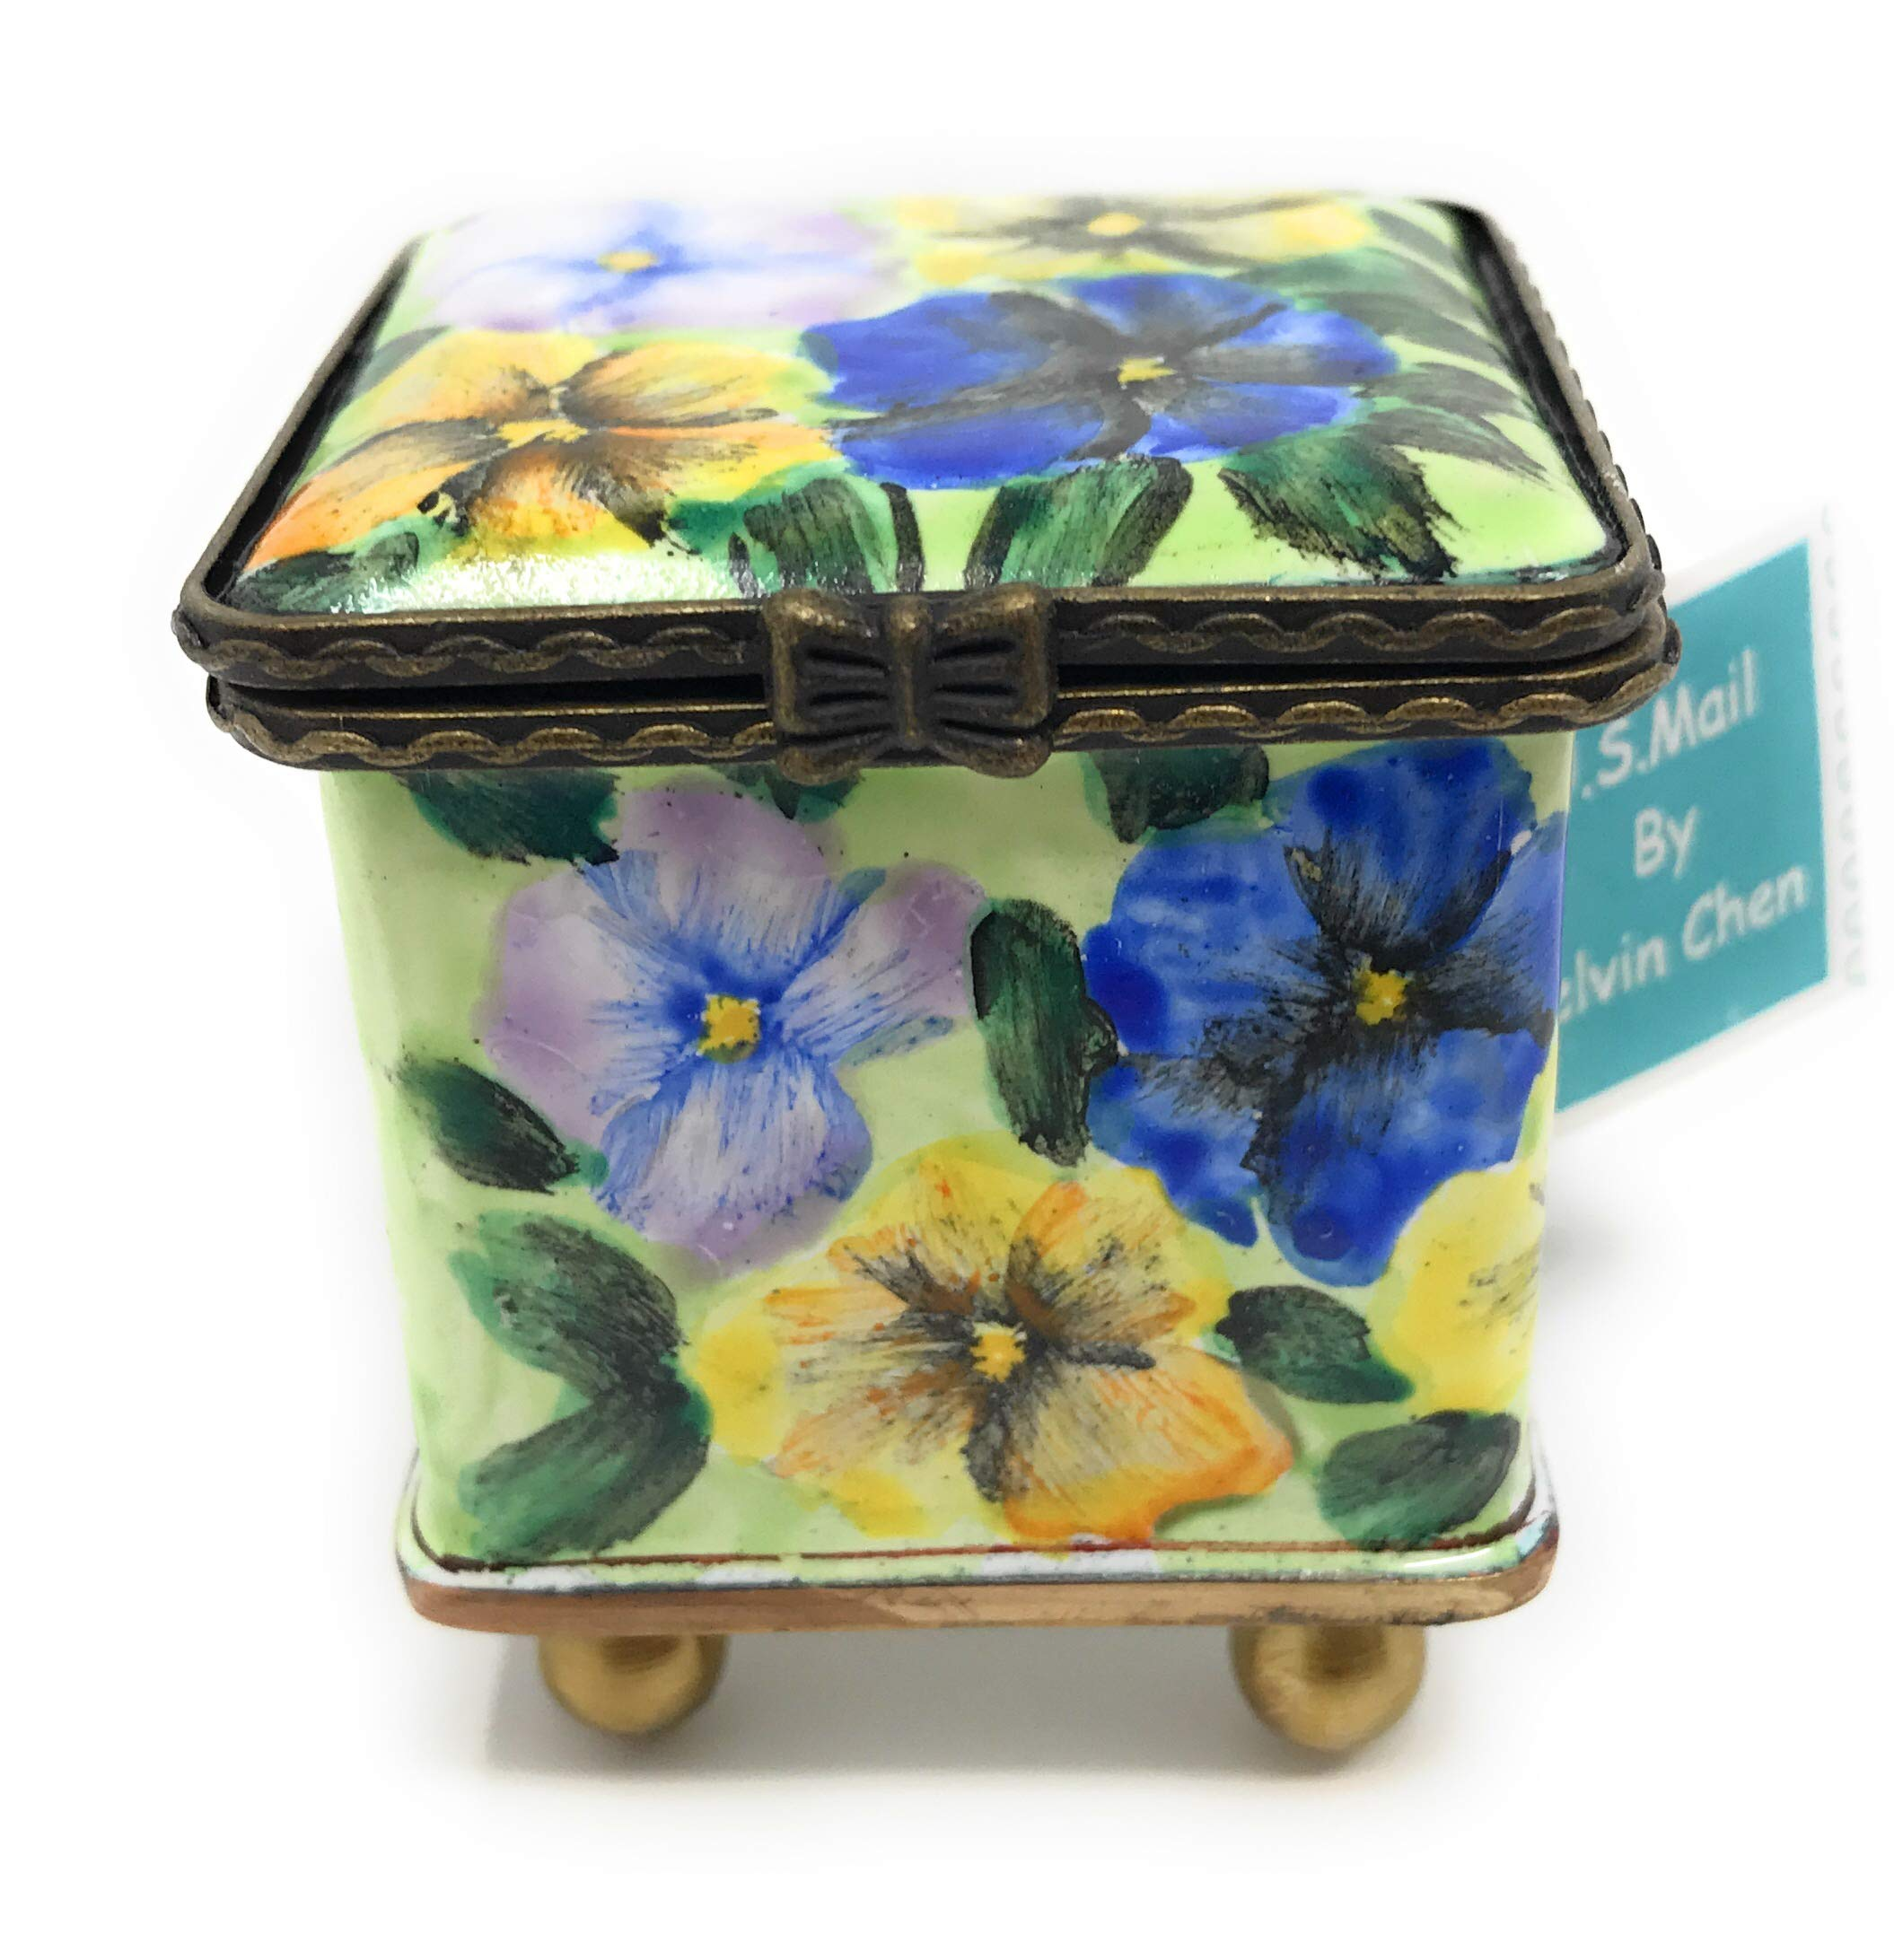 Kelvin Chen Pansy Blossoms Enameled Postage Stamp Holder, 1.75 Inches Square by Kelvin Chen